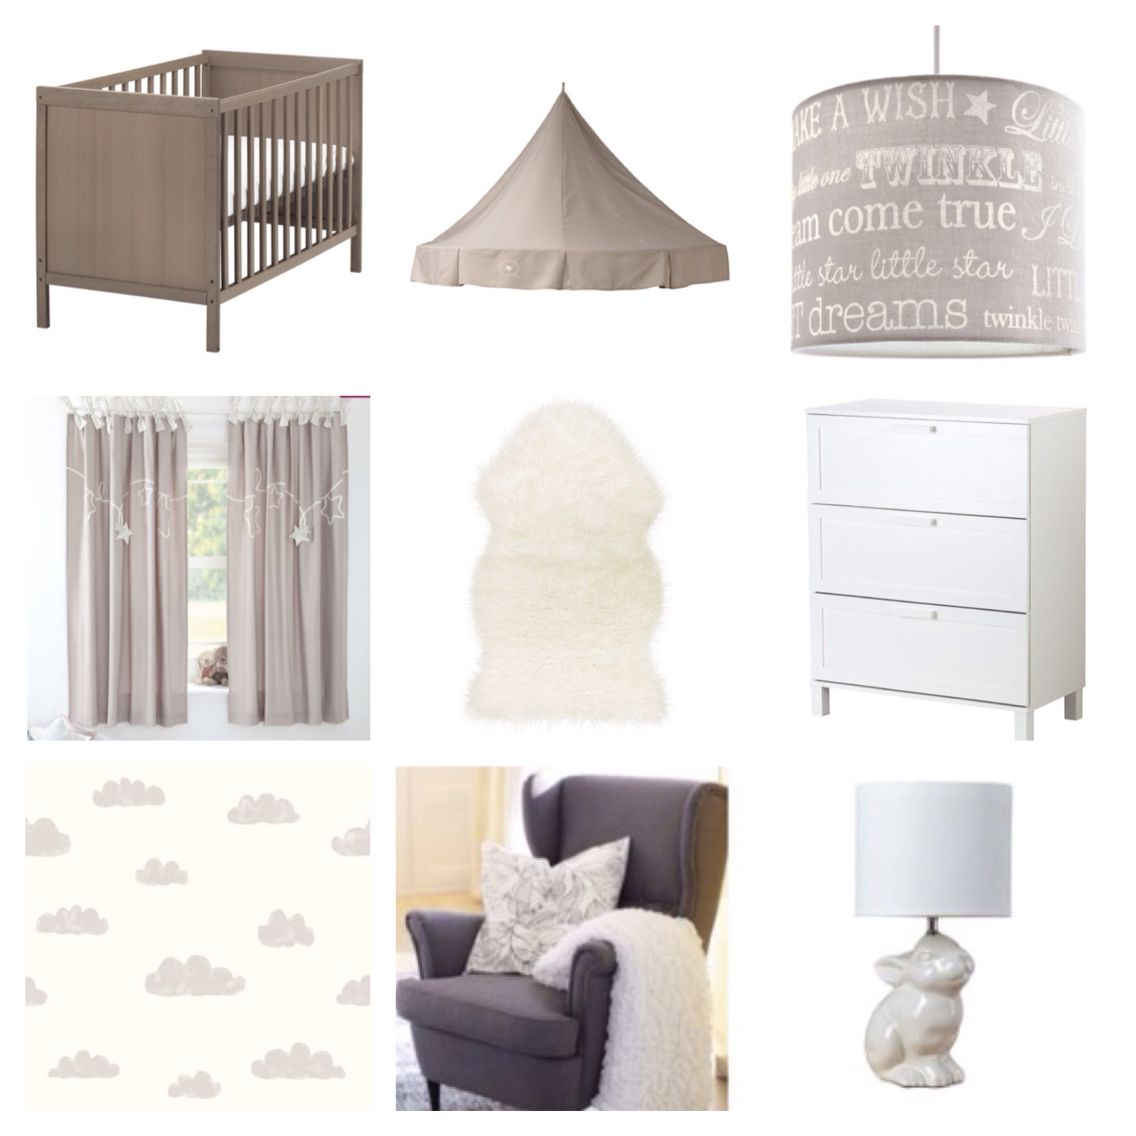 Aneboda Chest Of Drawers Neautral Nursery Inspiration Ikea Sundvik Cot Aneboda Chest Of